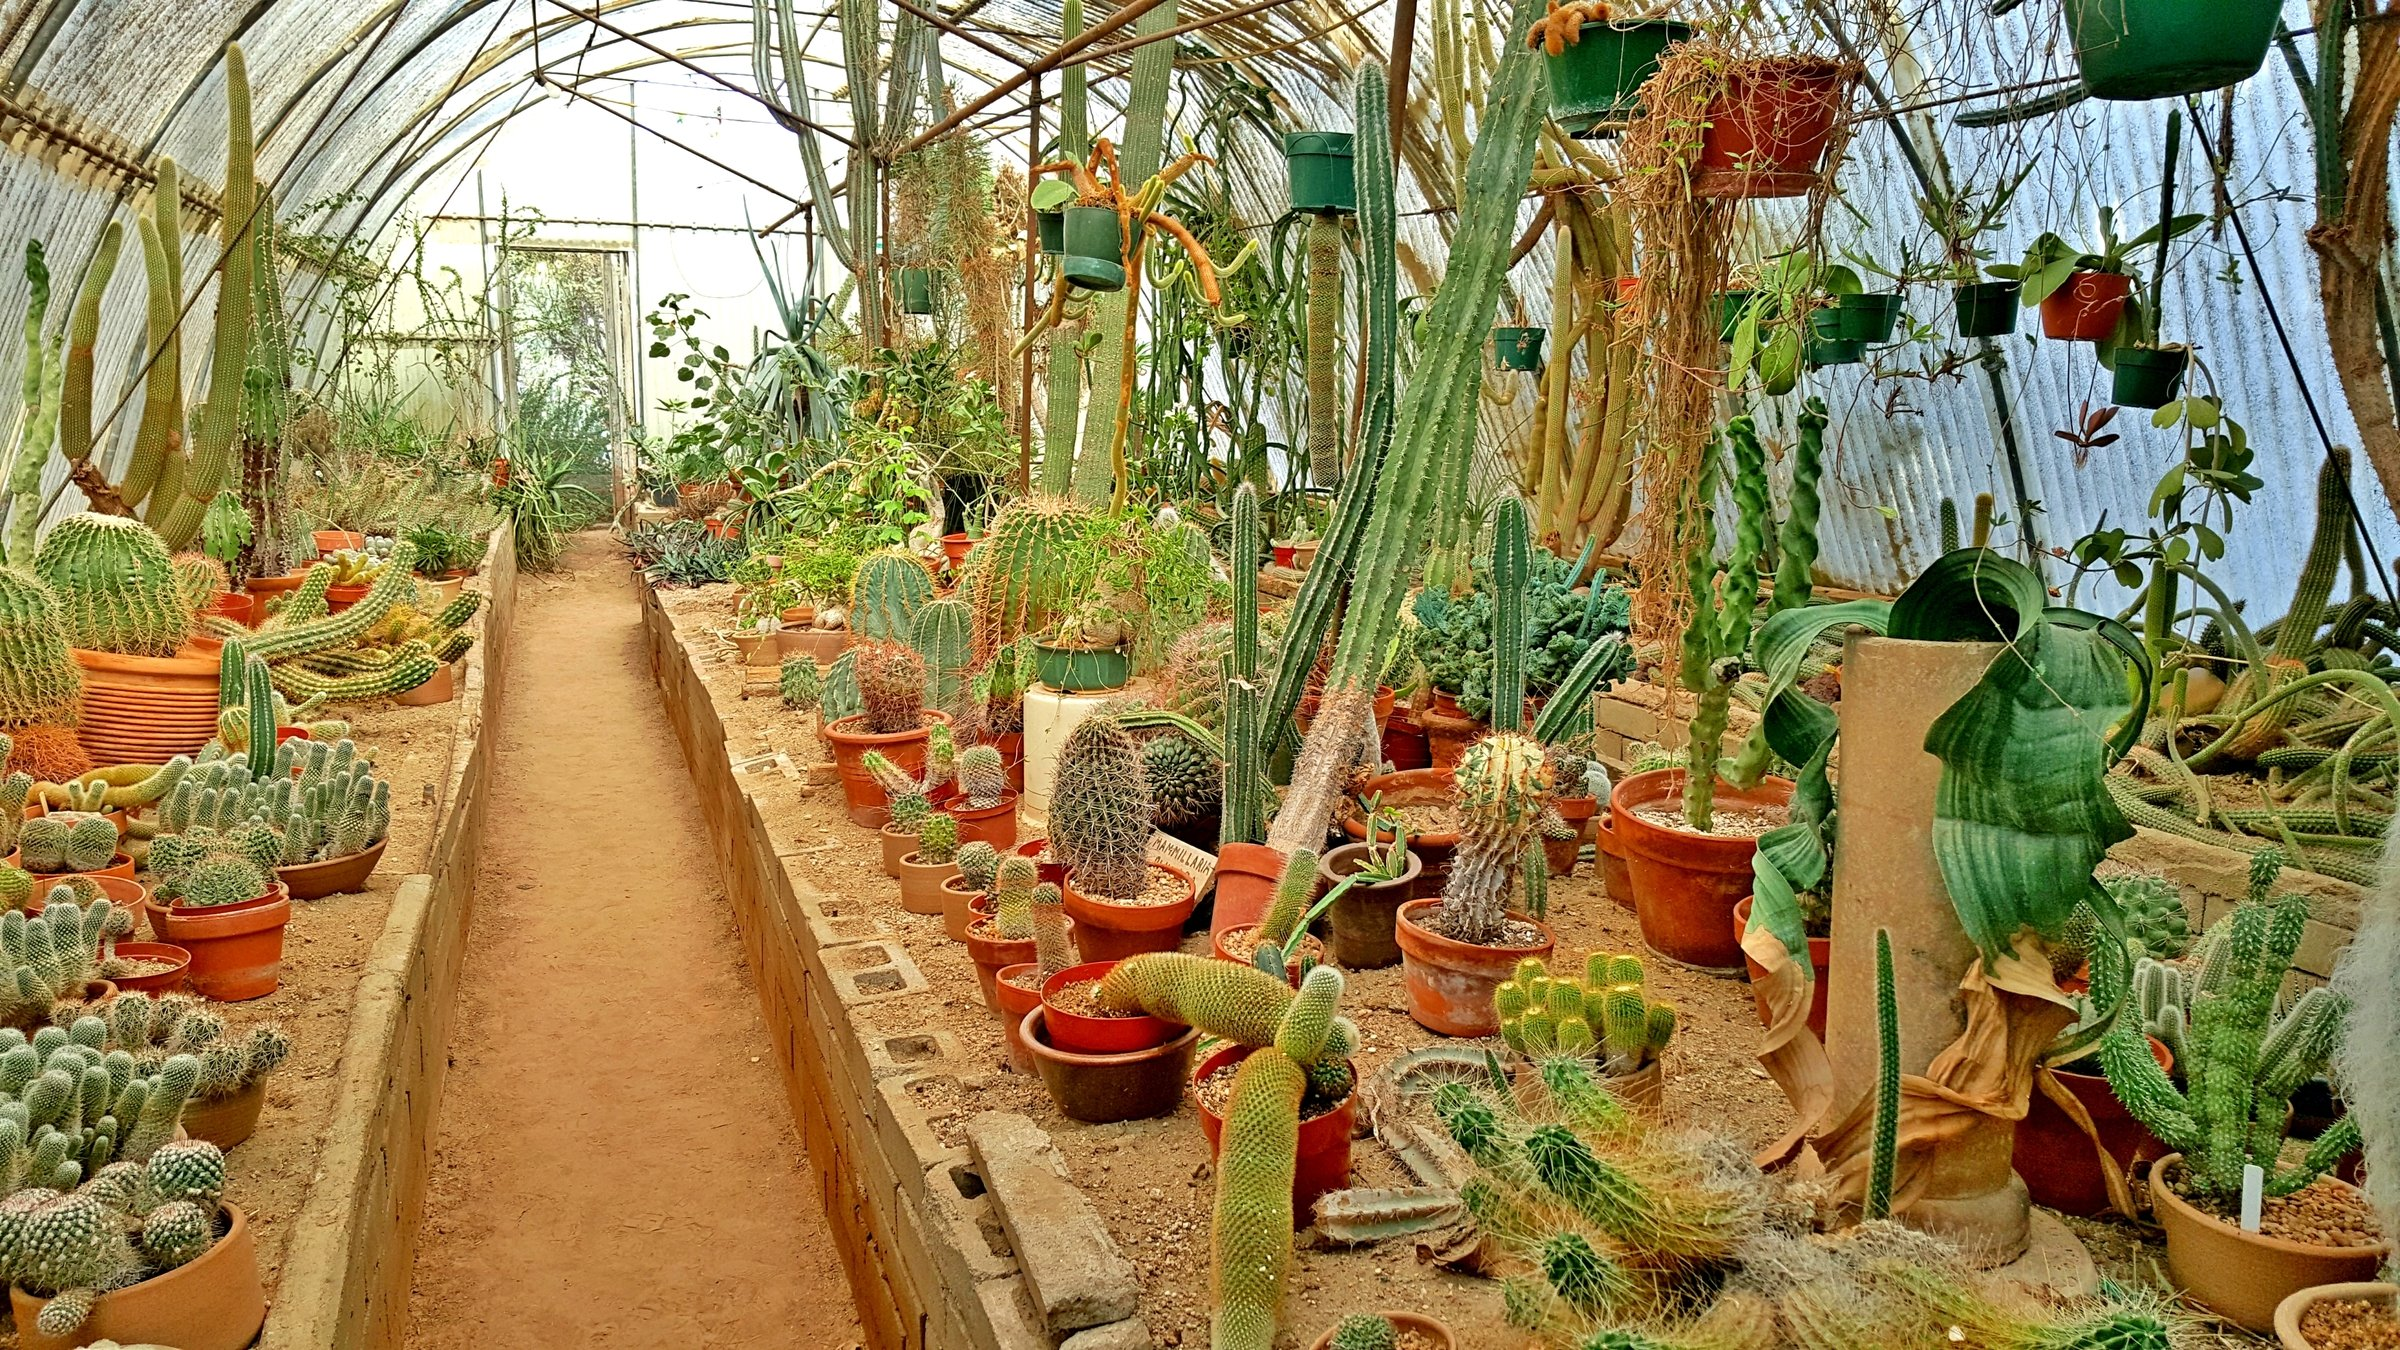 Cacti on display in small pots inside of a greenhouse.